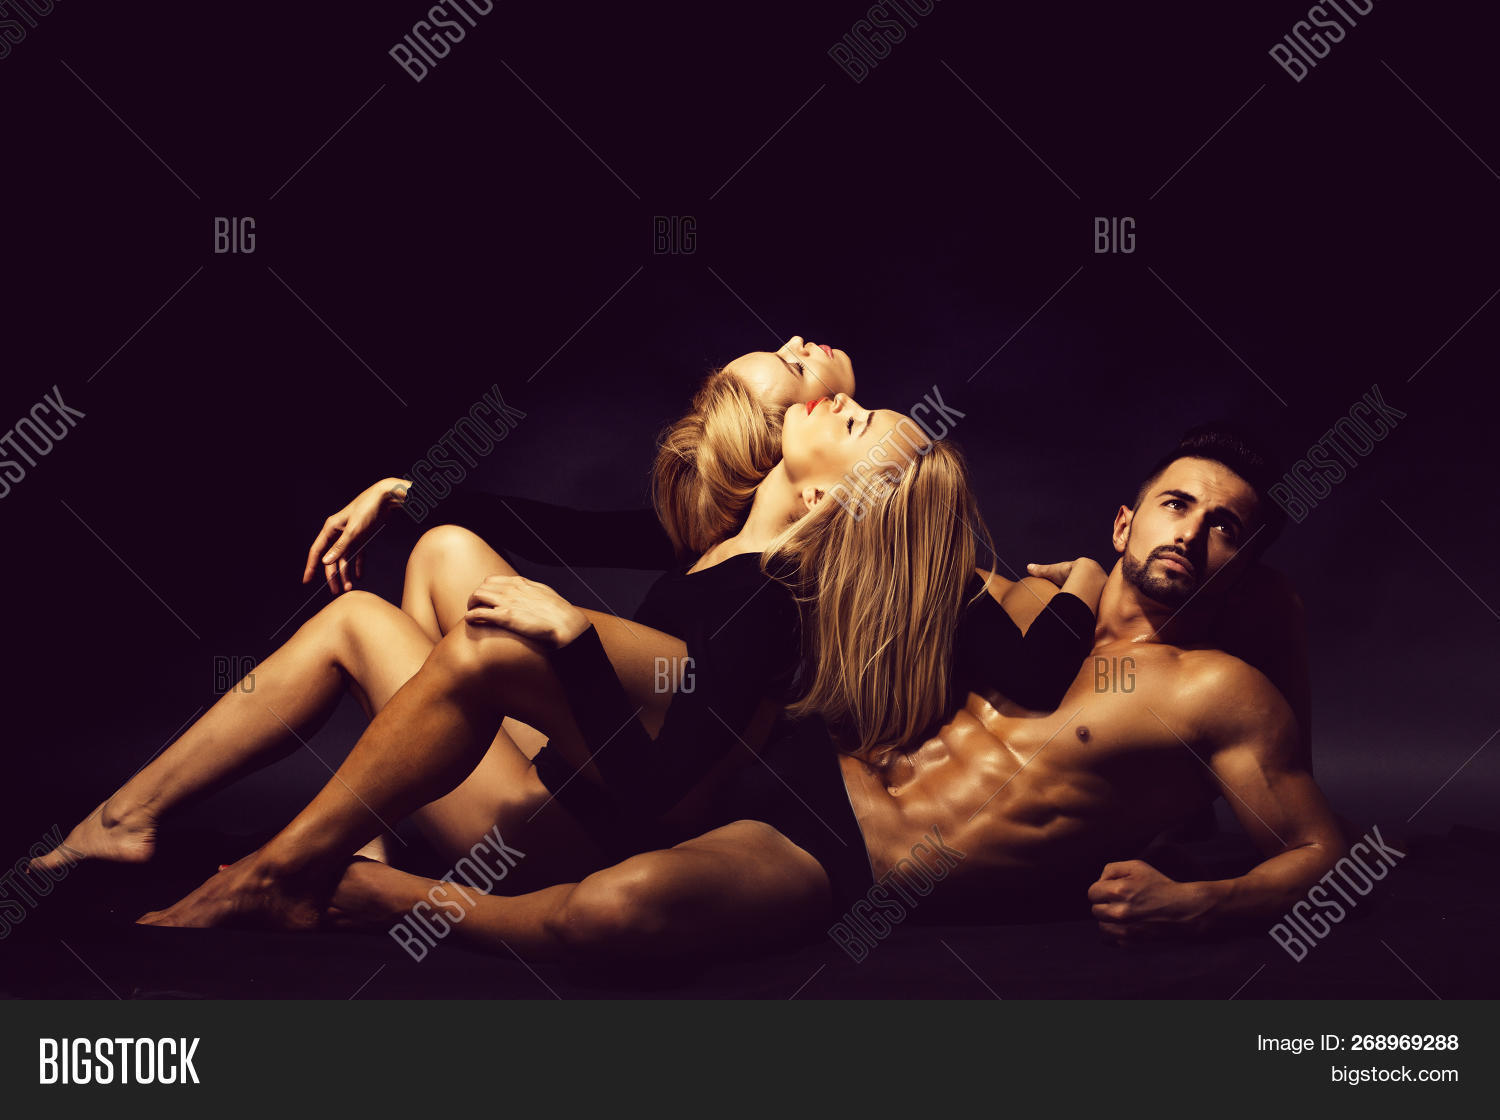 Real twin gay men with hot black girl photo 4